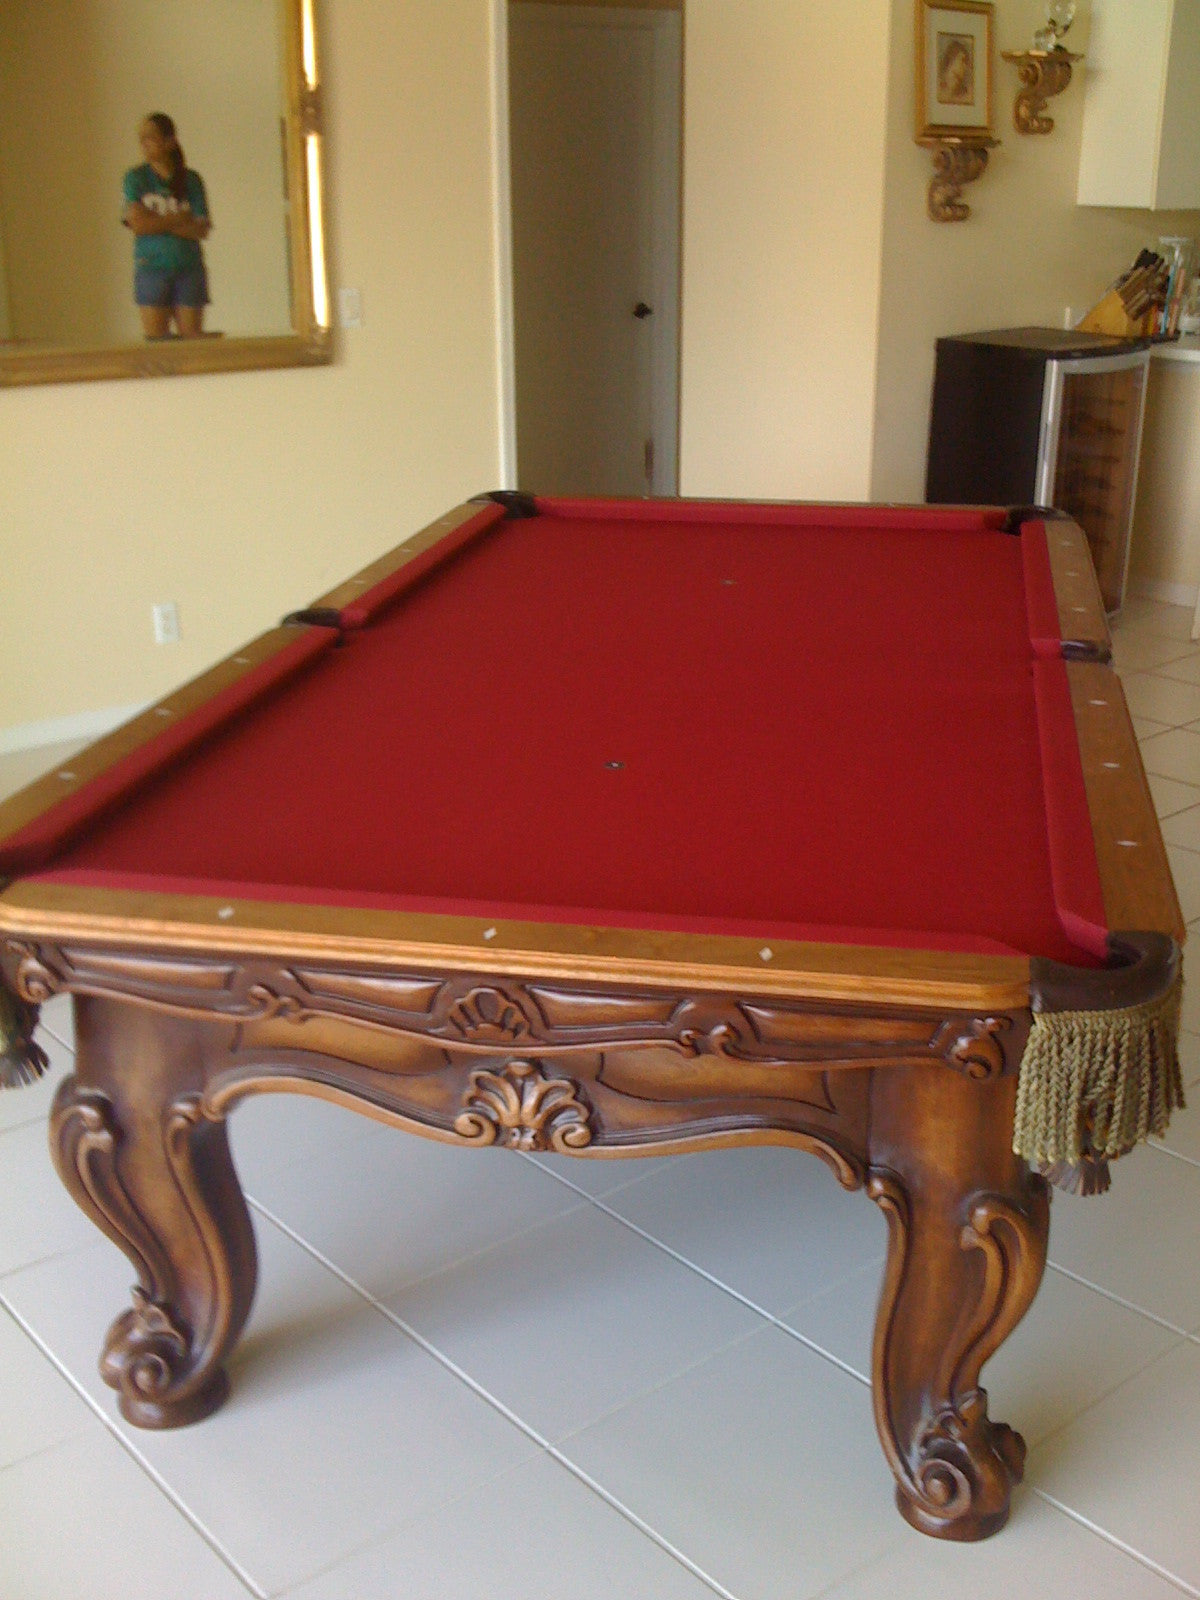 table ana p tables pool now shop htm olhausen santa